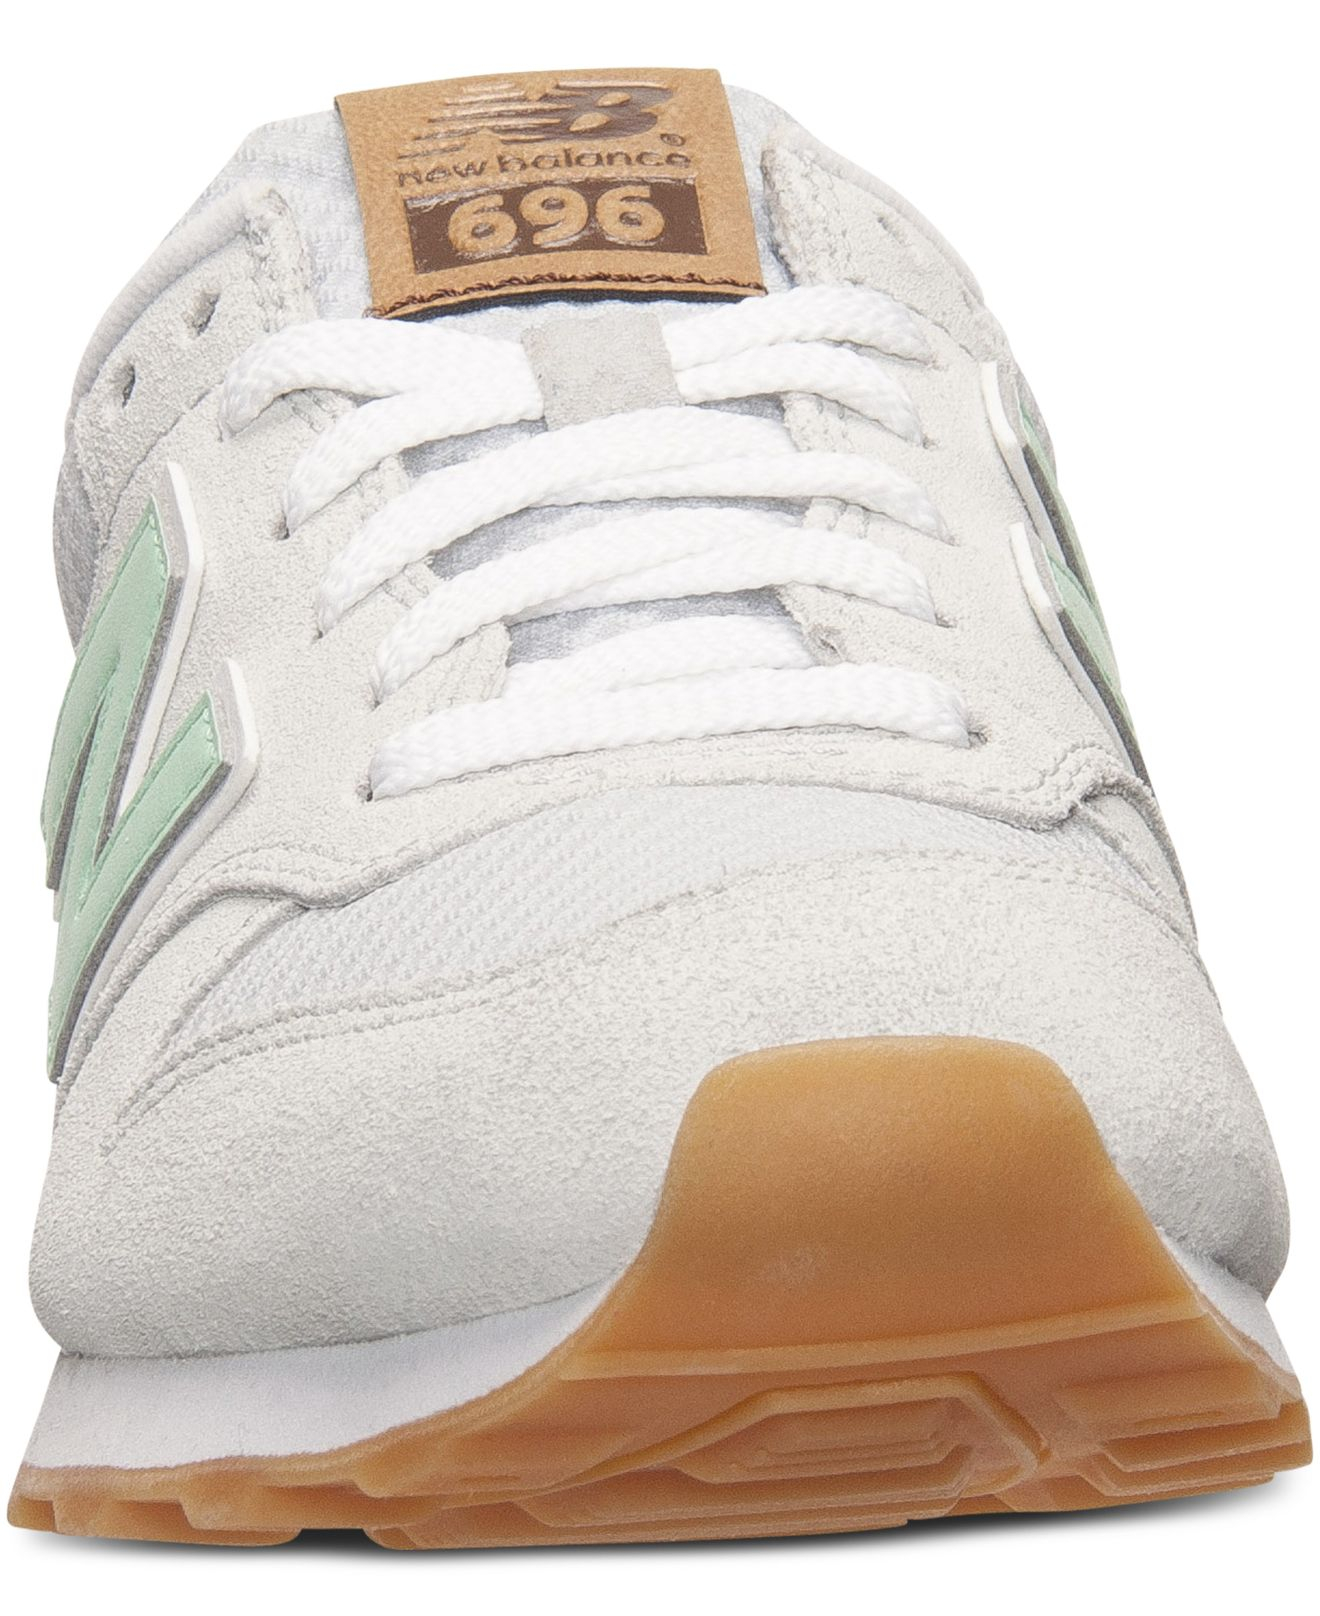 Lyst - New Balance Women s 696 Casual Sneakers From Finish Line in Green bb799125ab0c